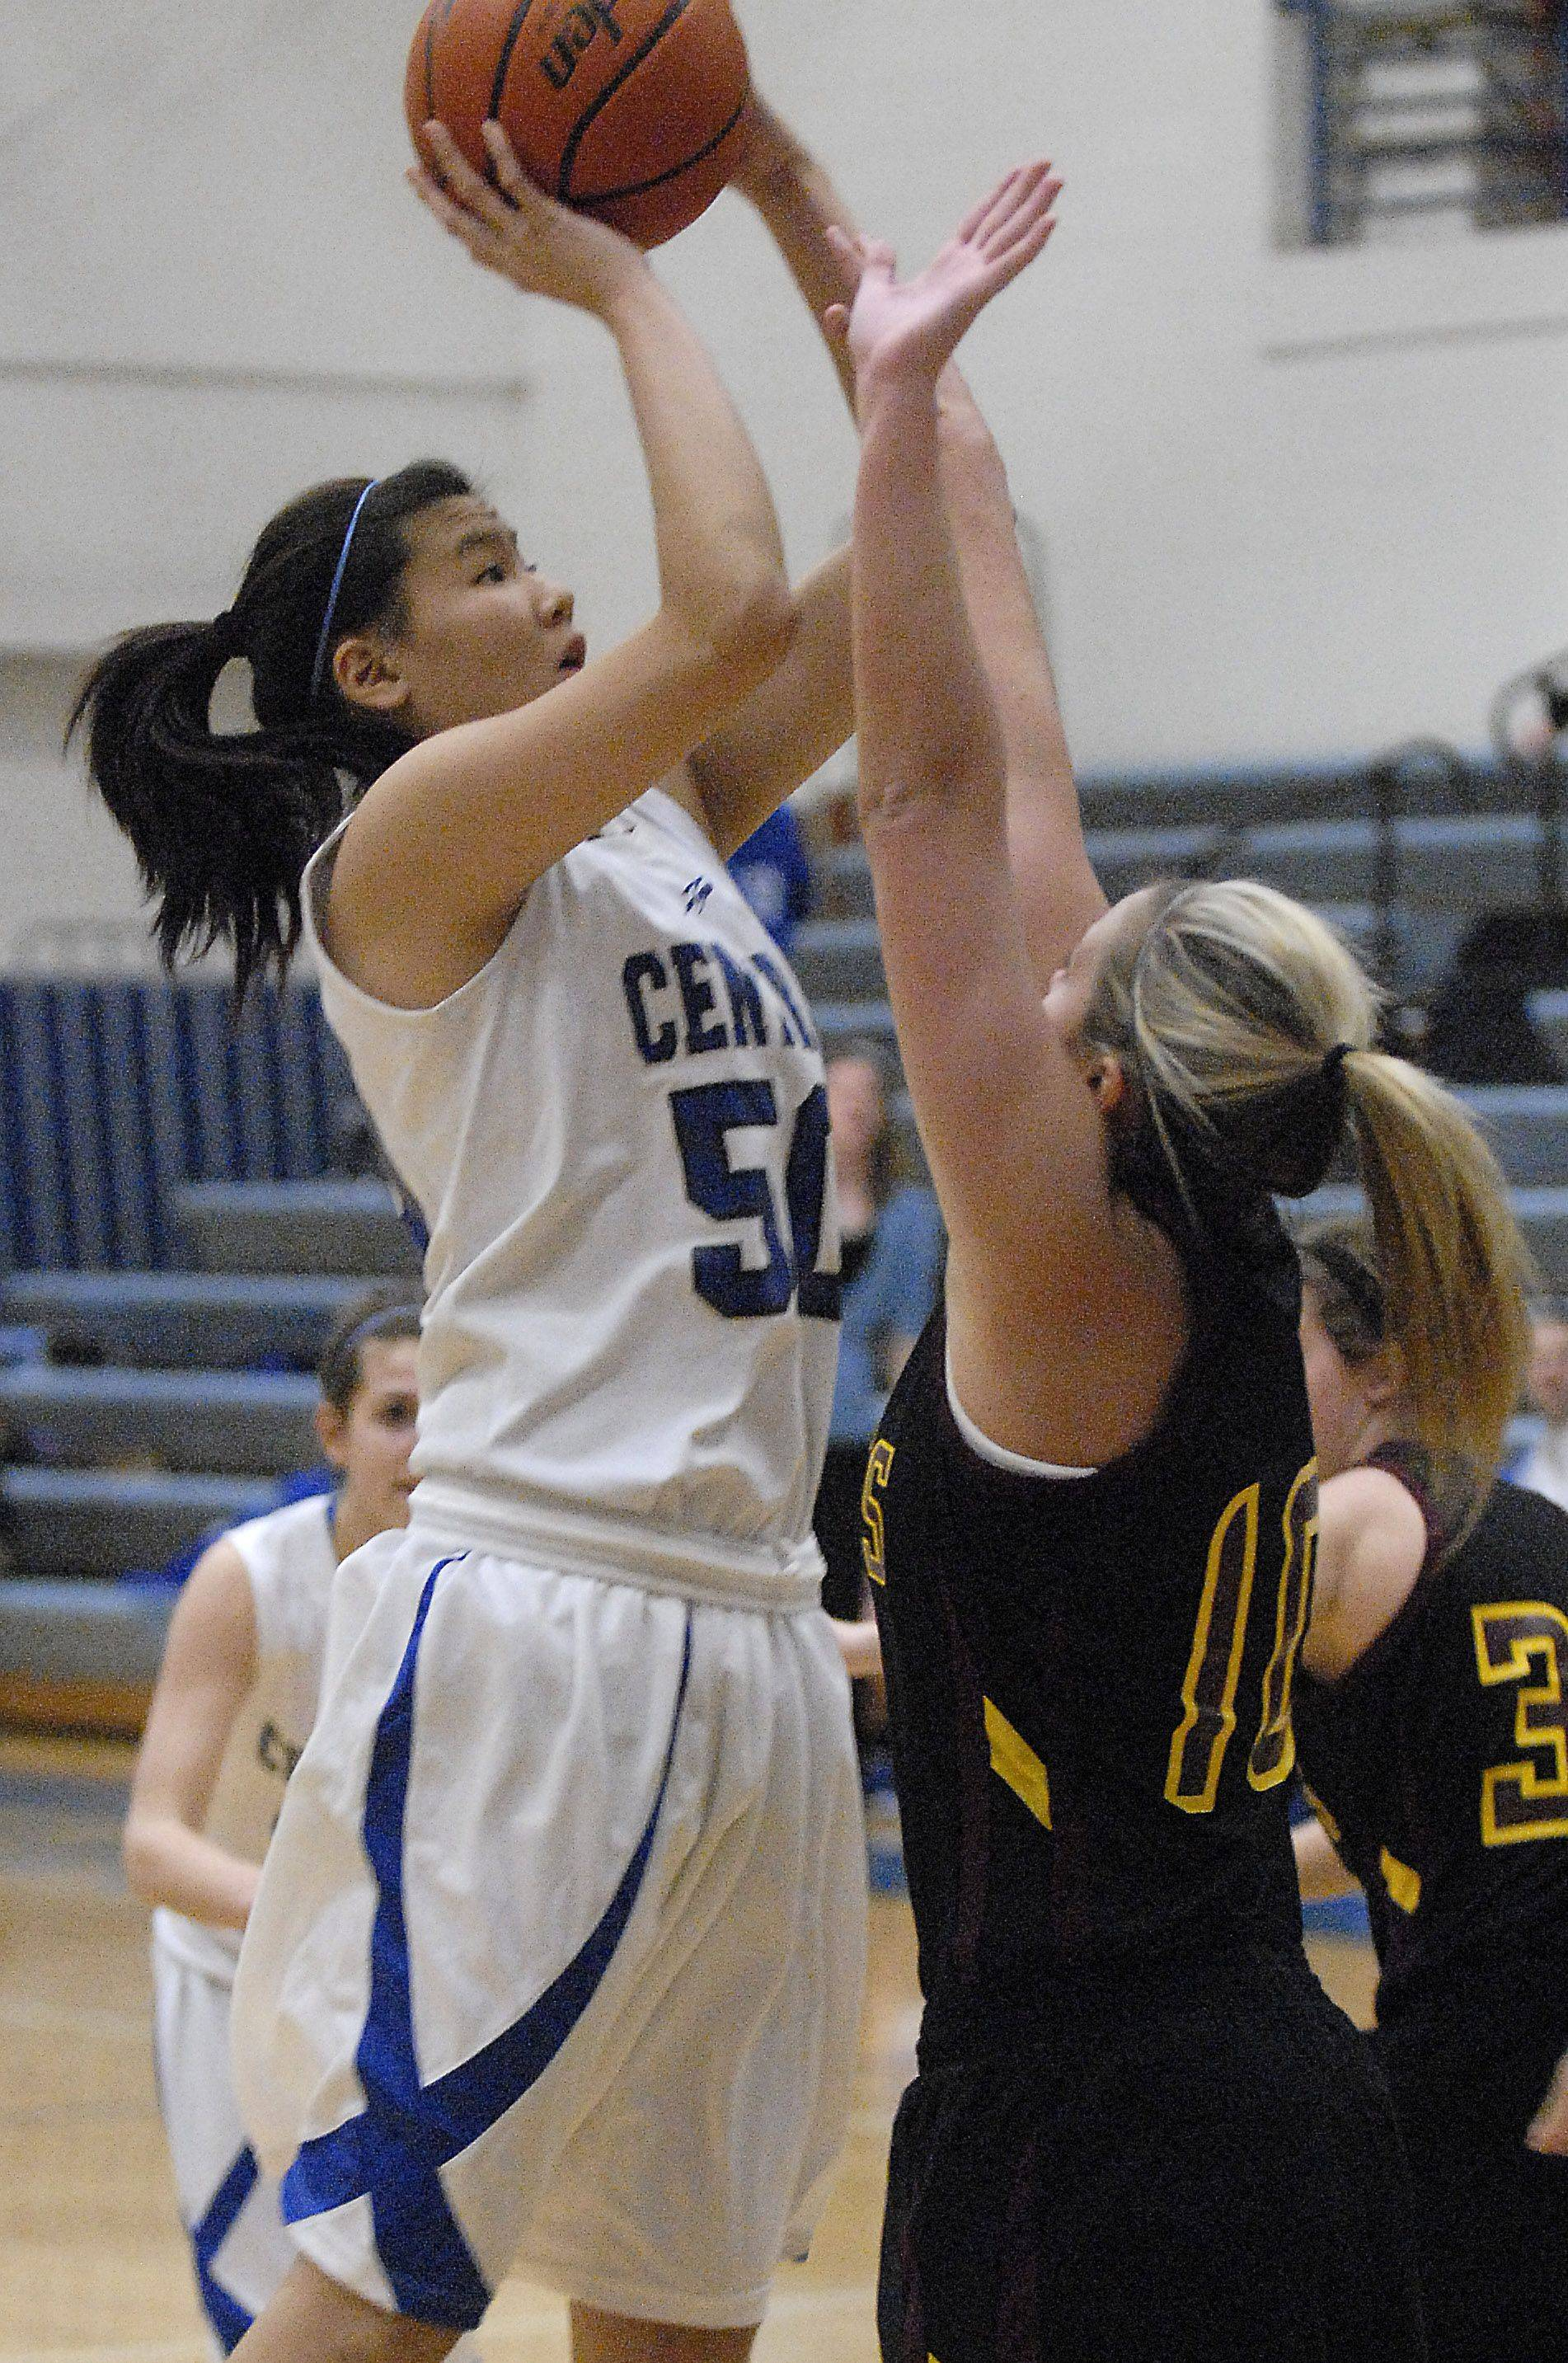 Burlington Central's Brenda Thasavong shoots past Richmond-Burton's Alex Callanan in the first quarter on Saturday.